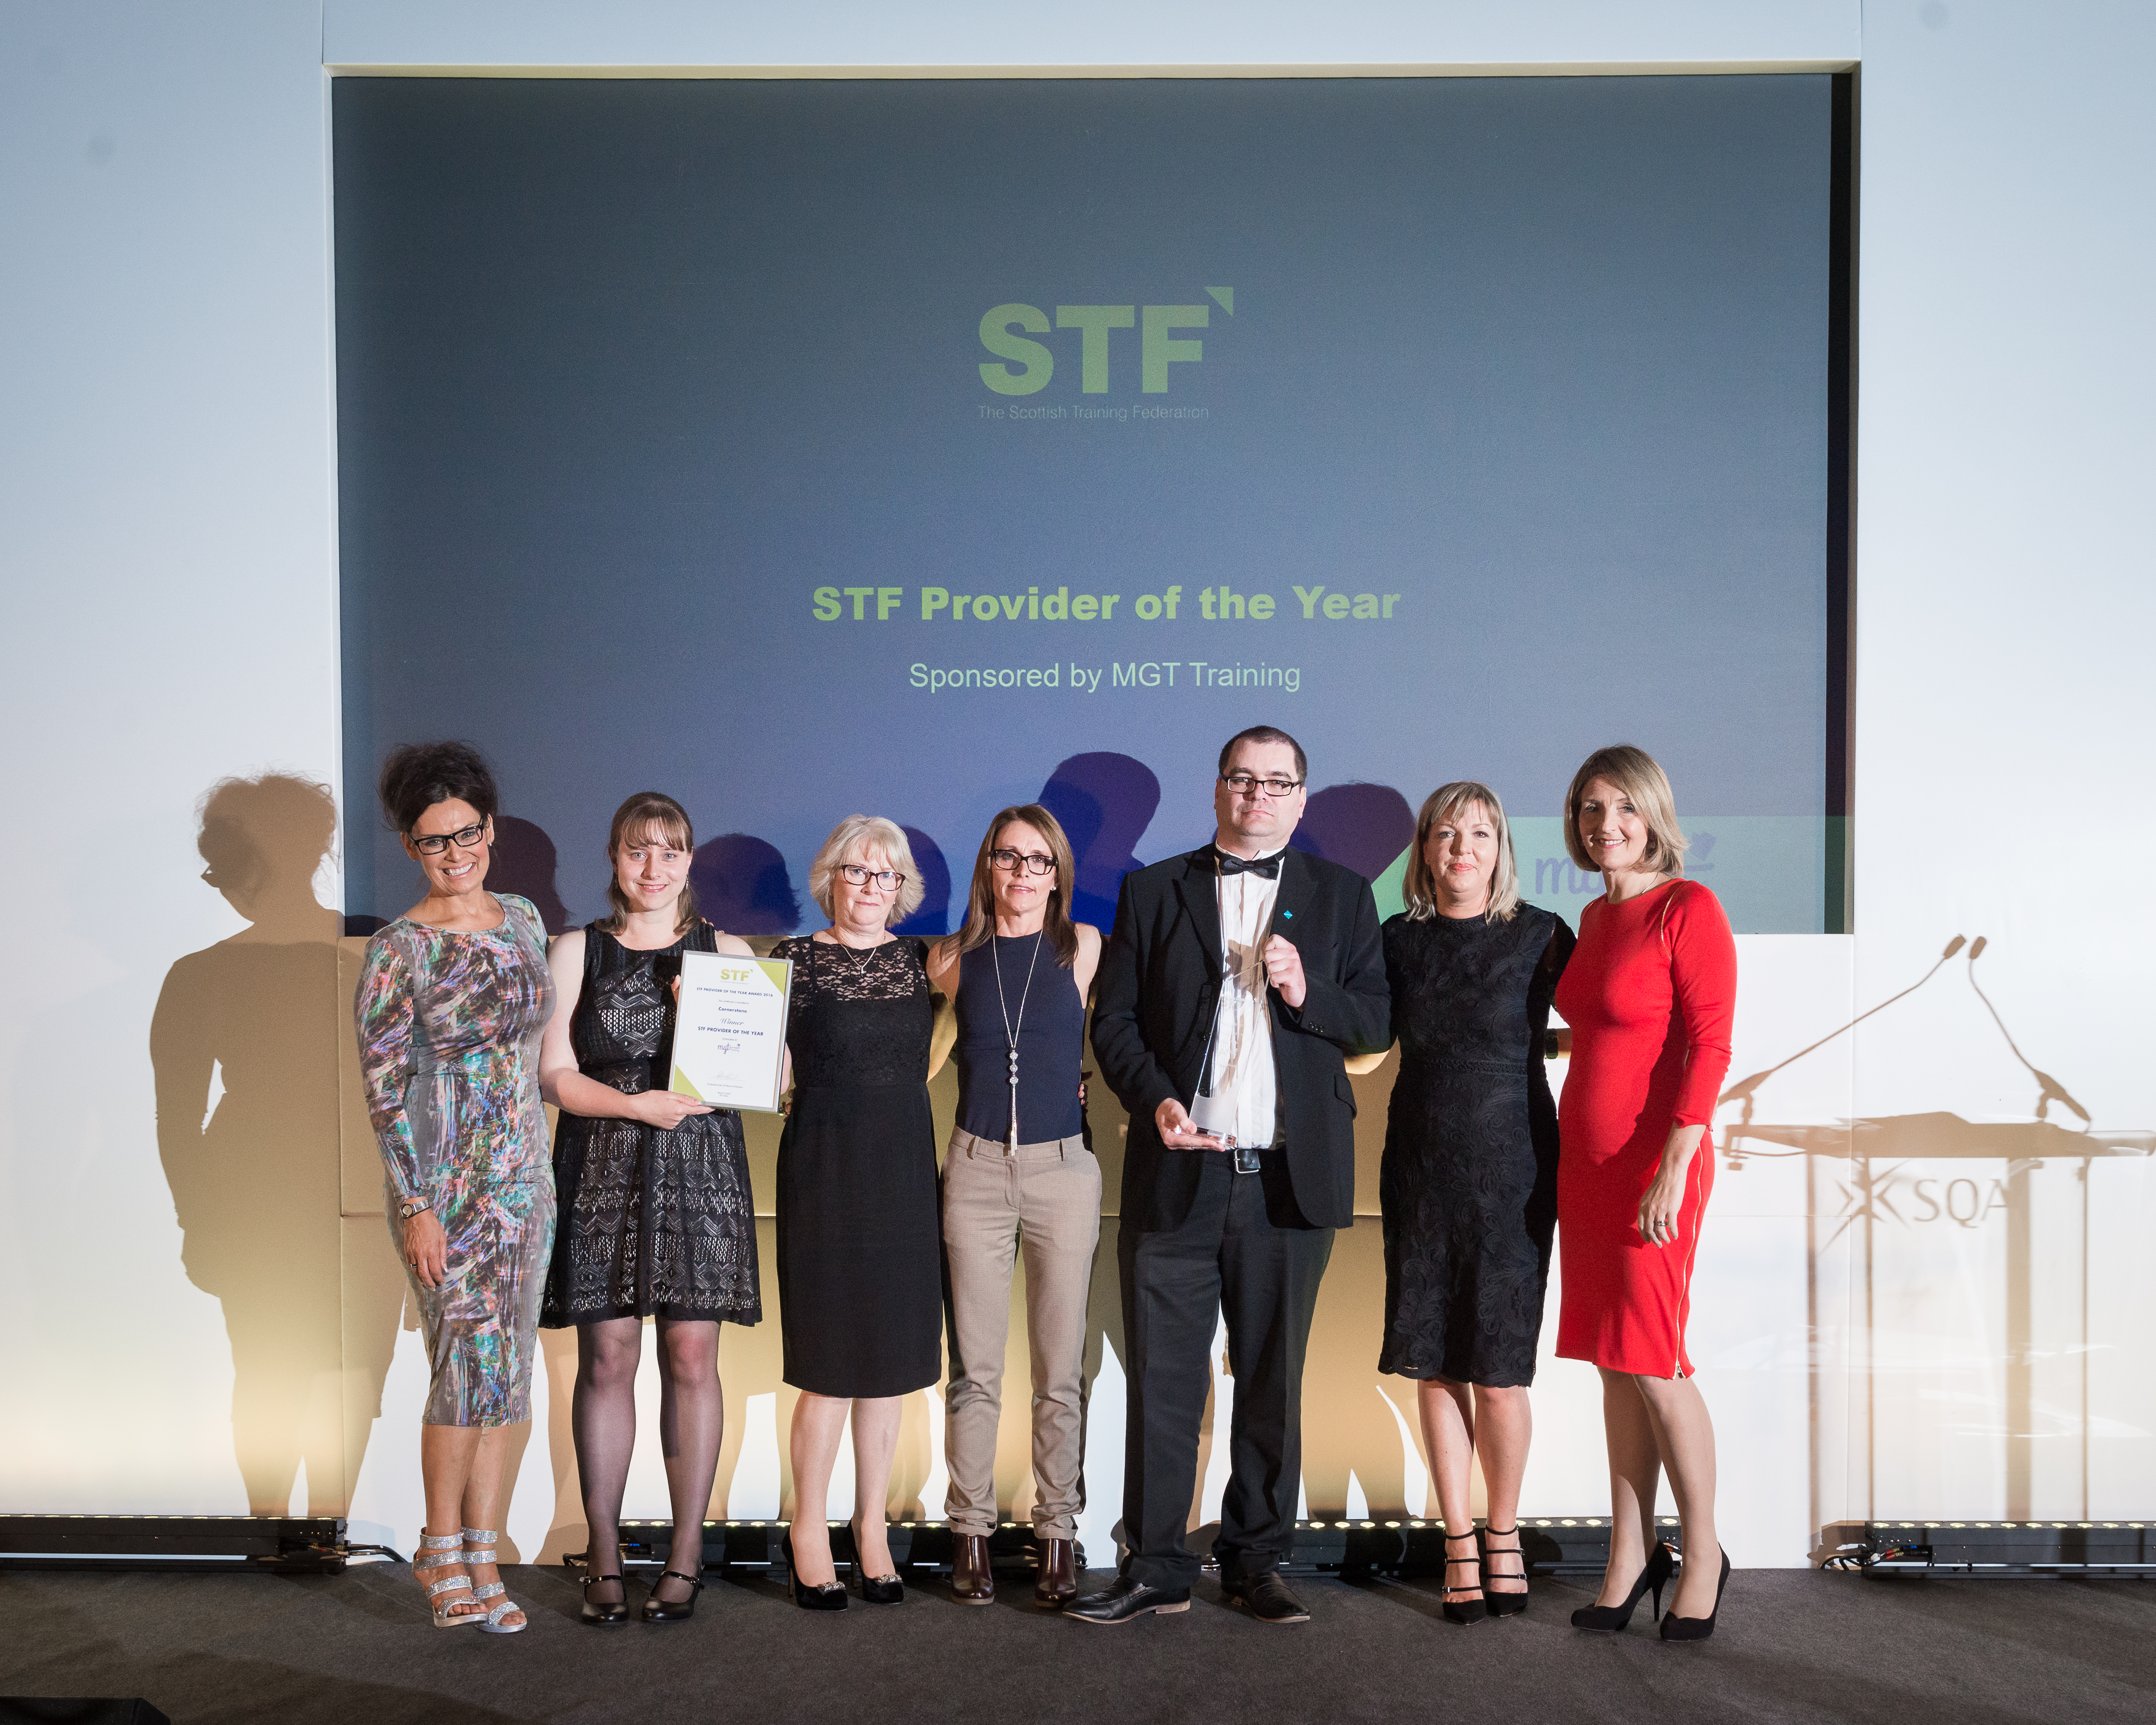 stfawards2016-print-19